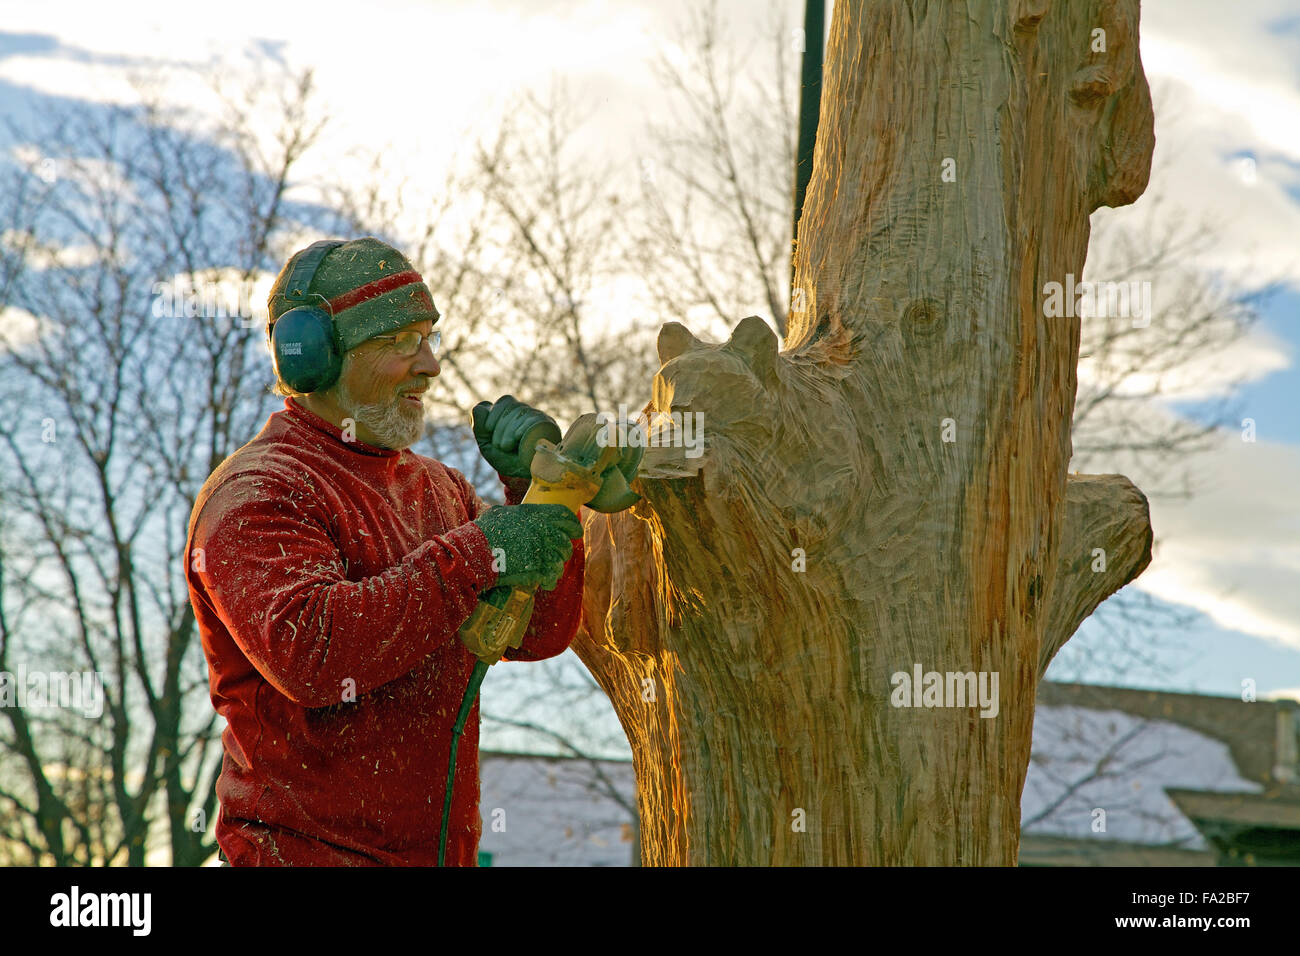 Wood carver using an angle grinder - Stock Image